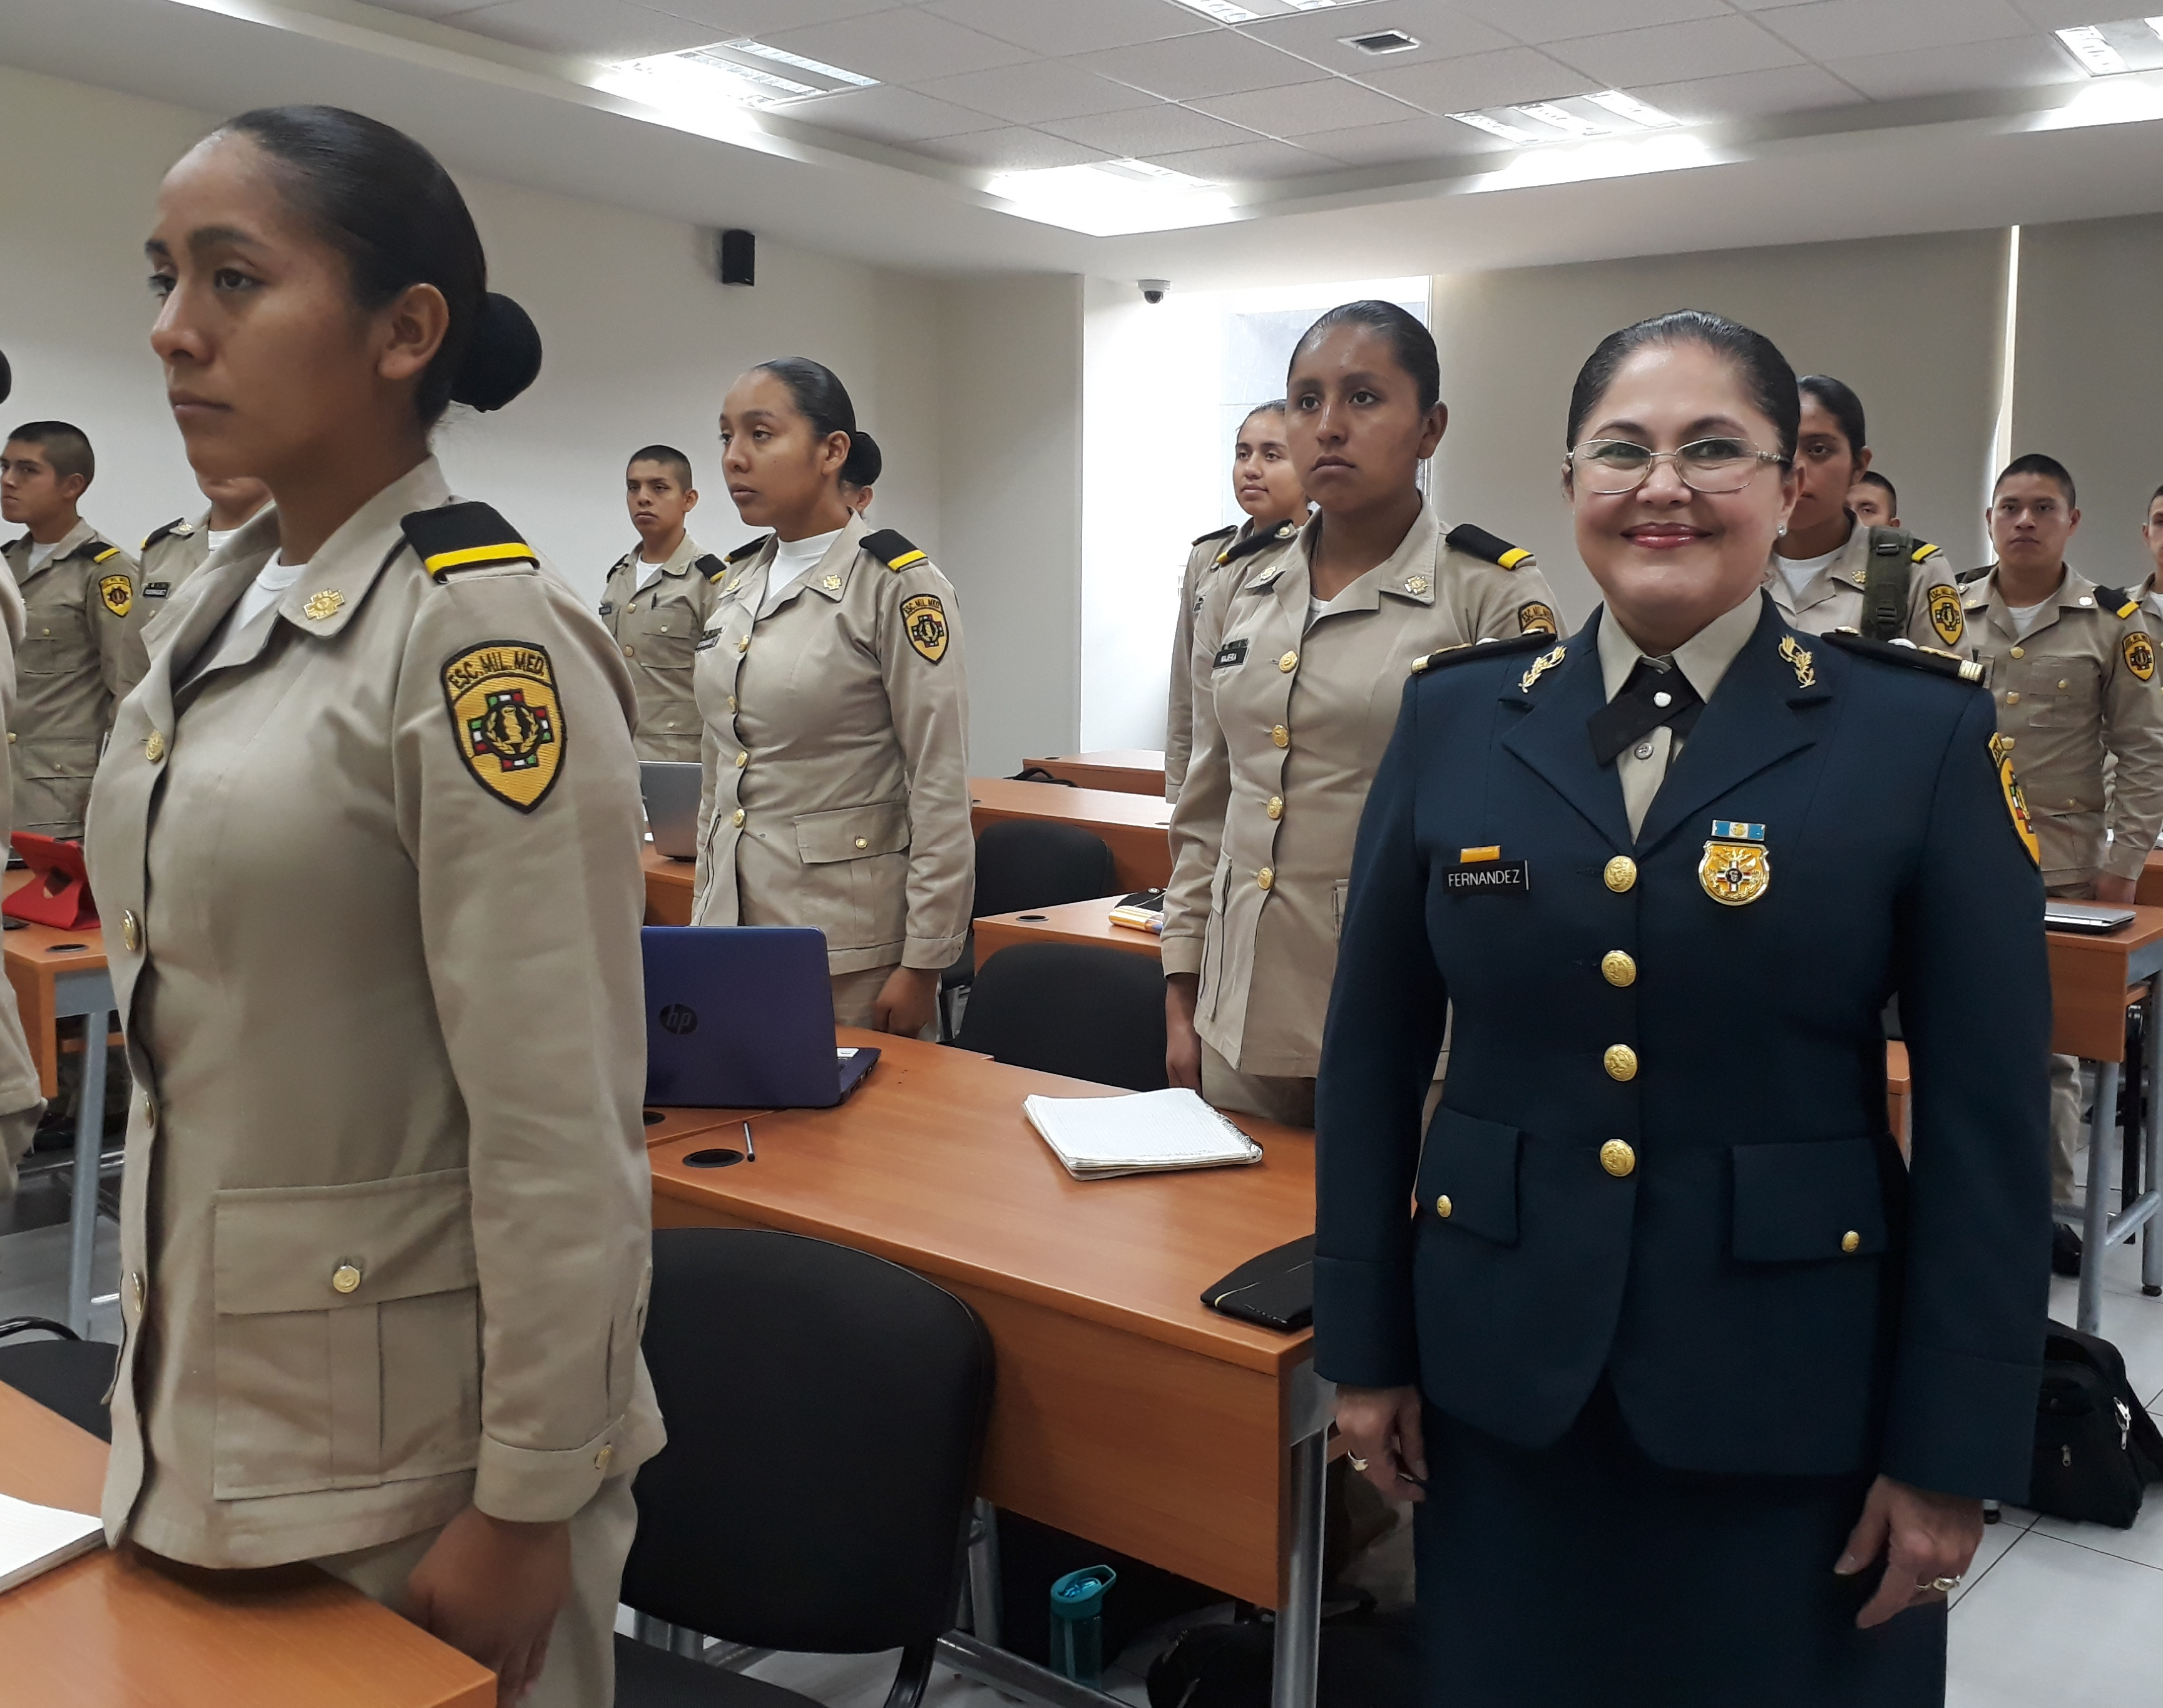 Mexican Armed Forces Make Headway on Gender Equality